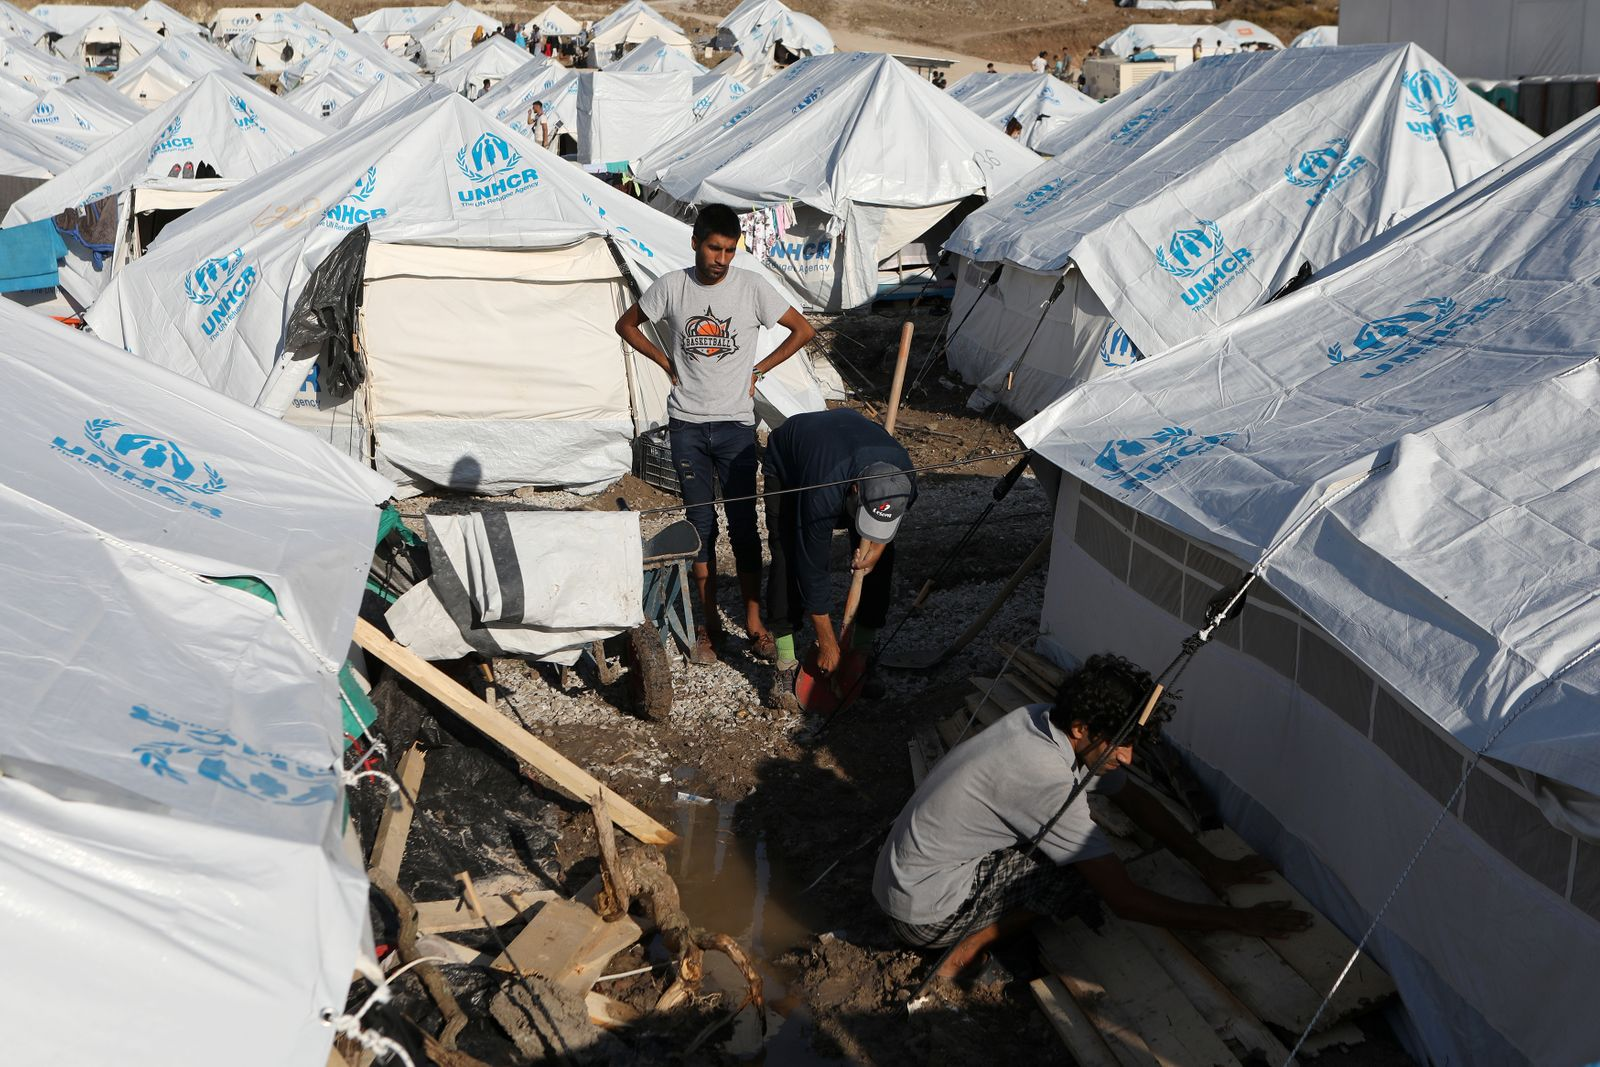 Men repair a tent following a storm, in the Kara Tepe camp for refugees and migrants on the island of Lesbos